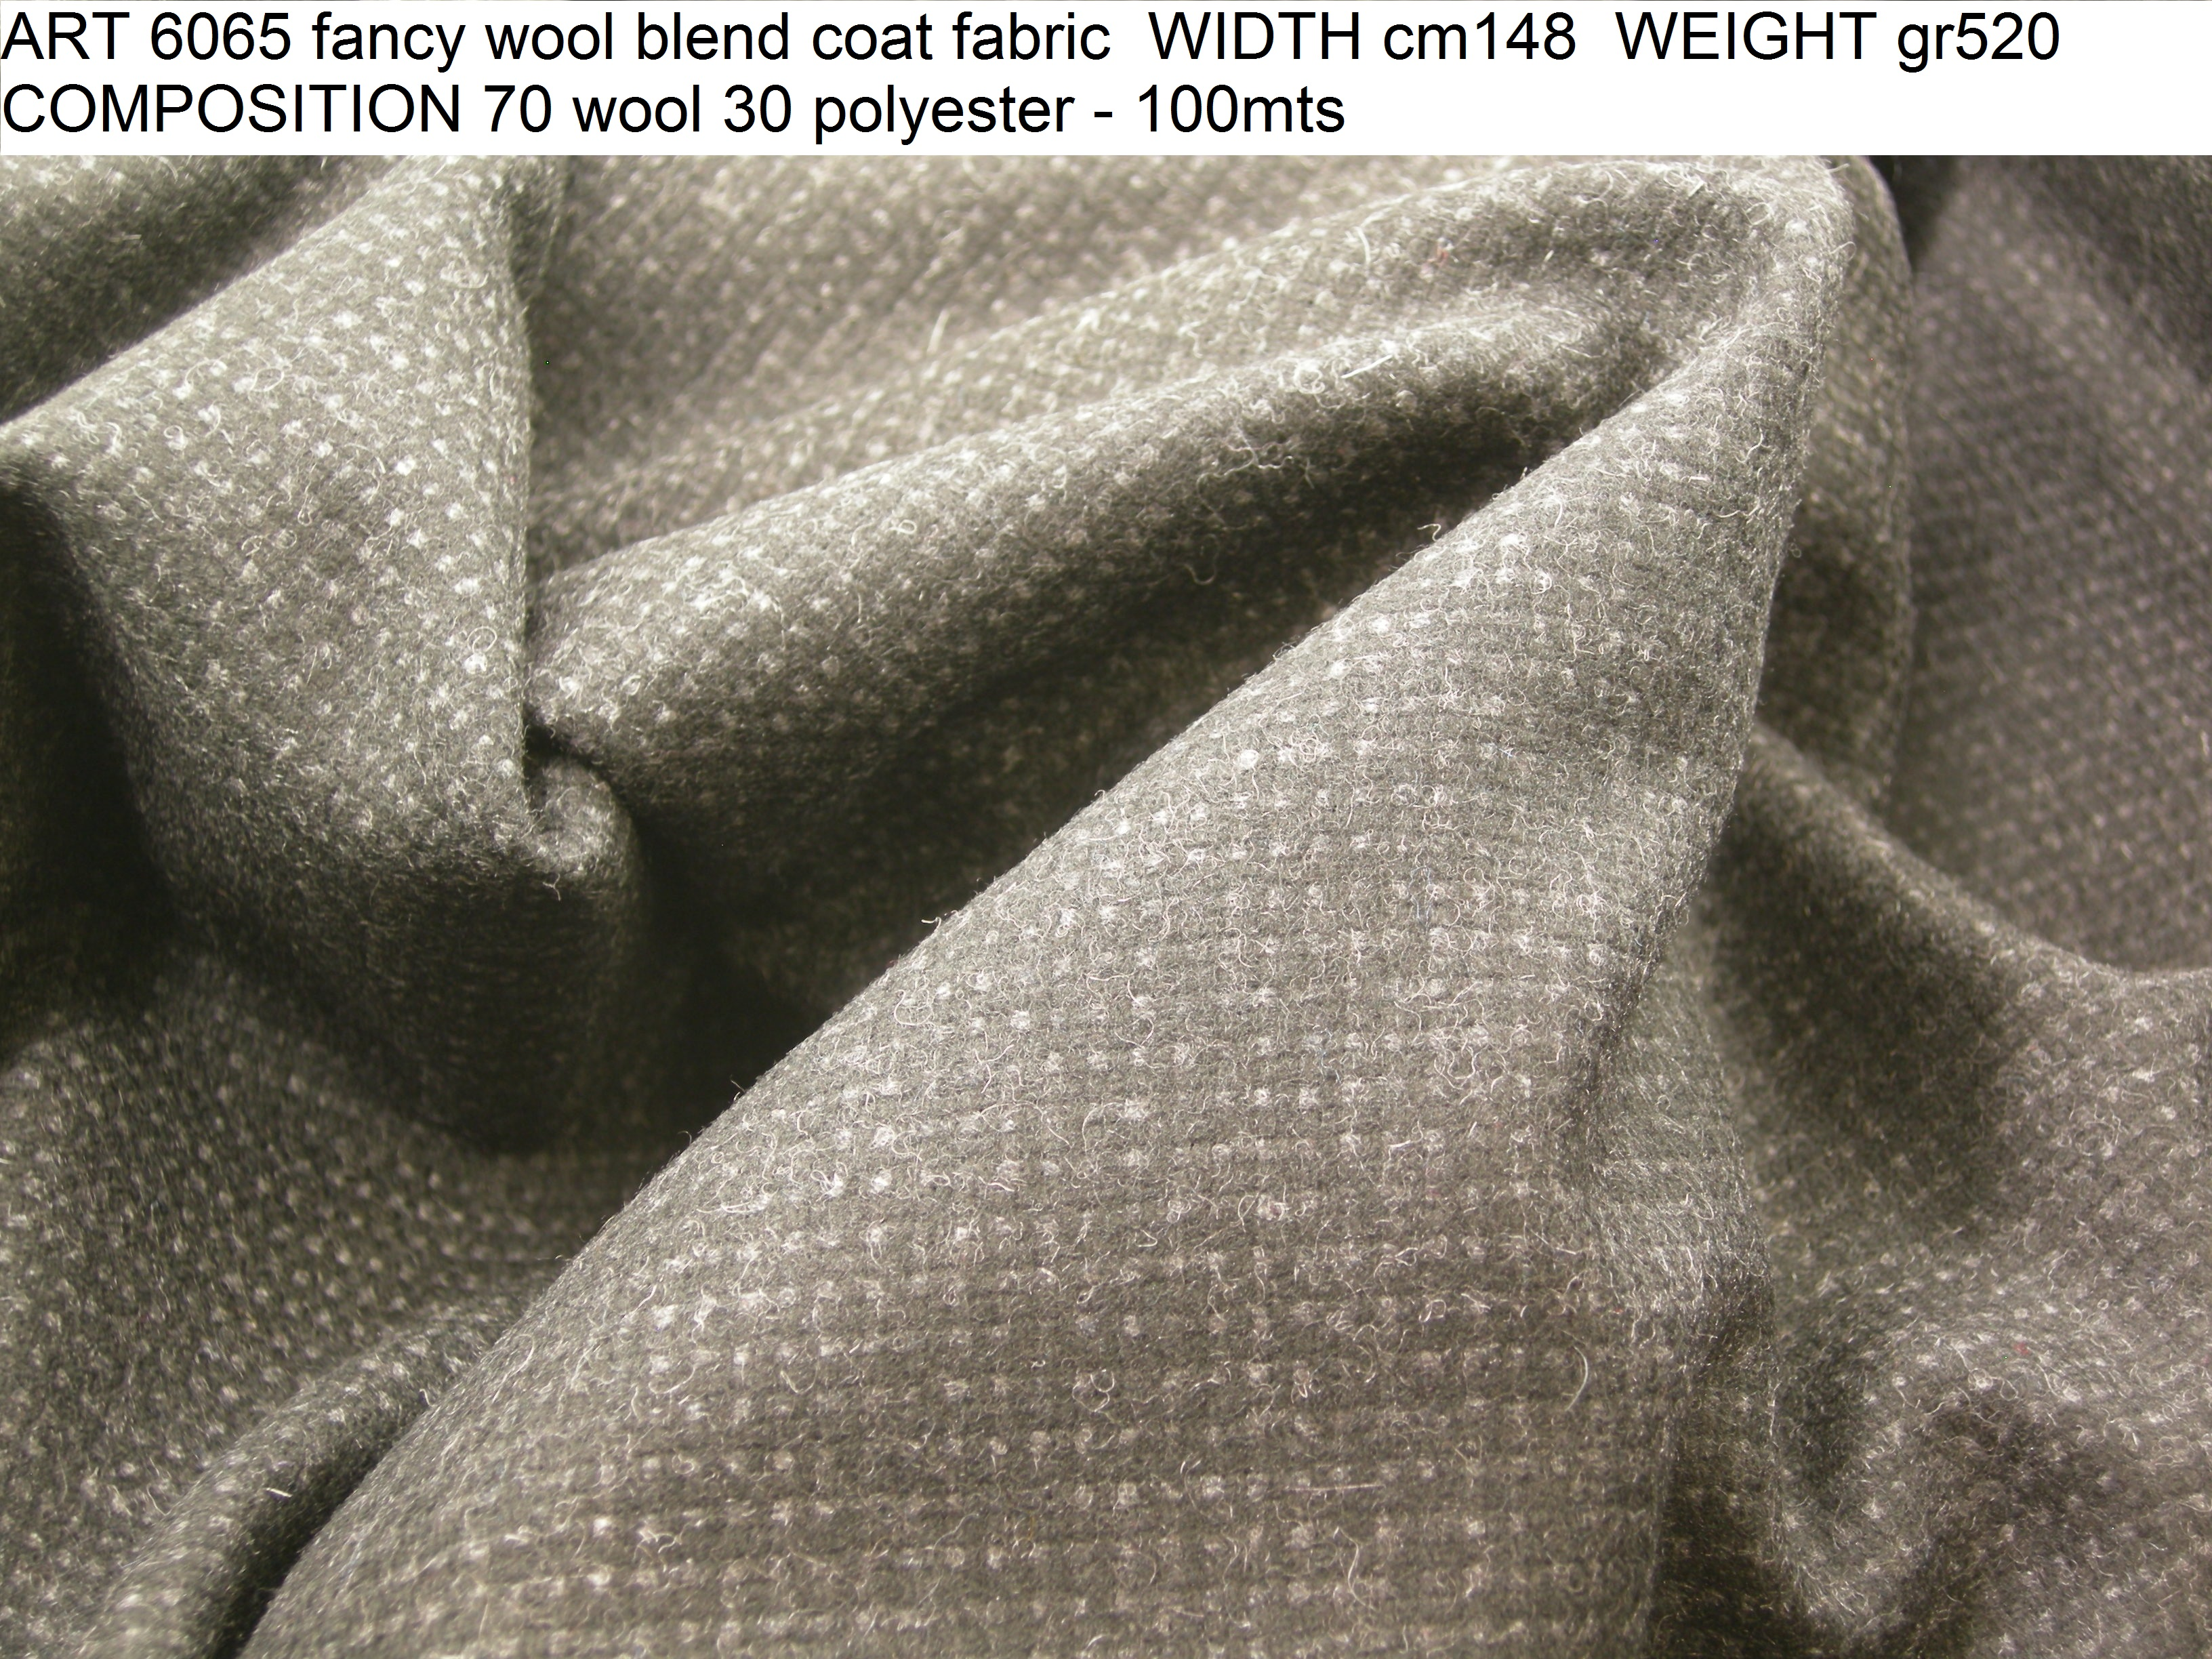 ART 6065 fancy wool blend coat fabric WIDTH cm148 WEIGHT gr520 COMPOSITION 70 wool 30 polyester - 100mts